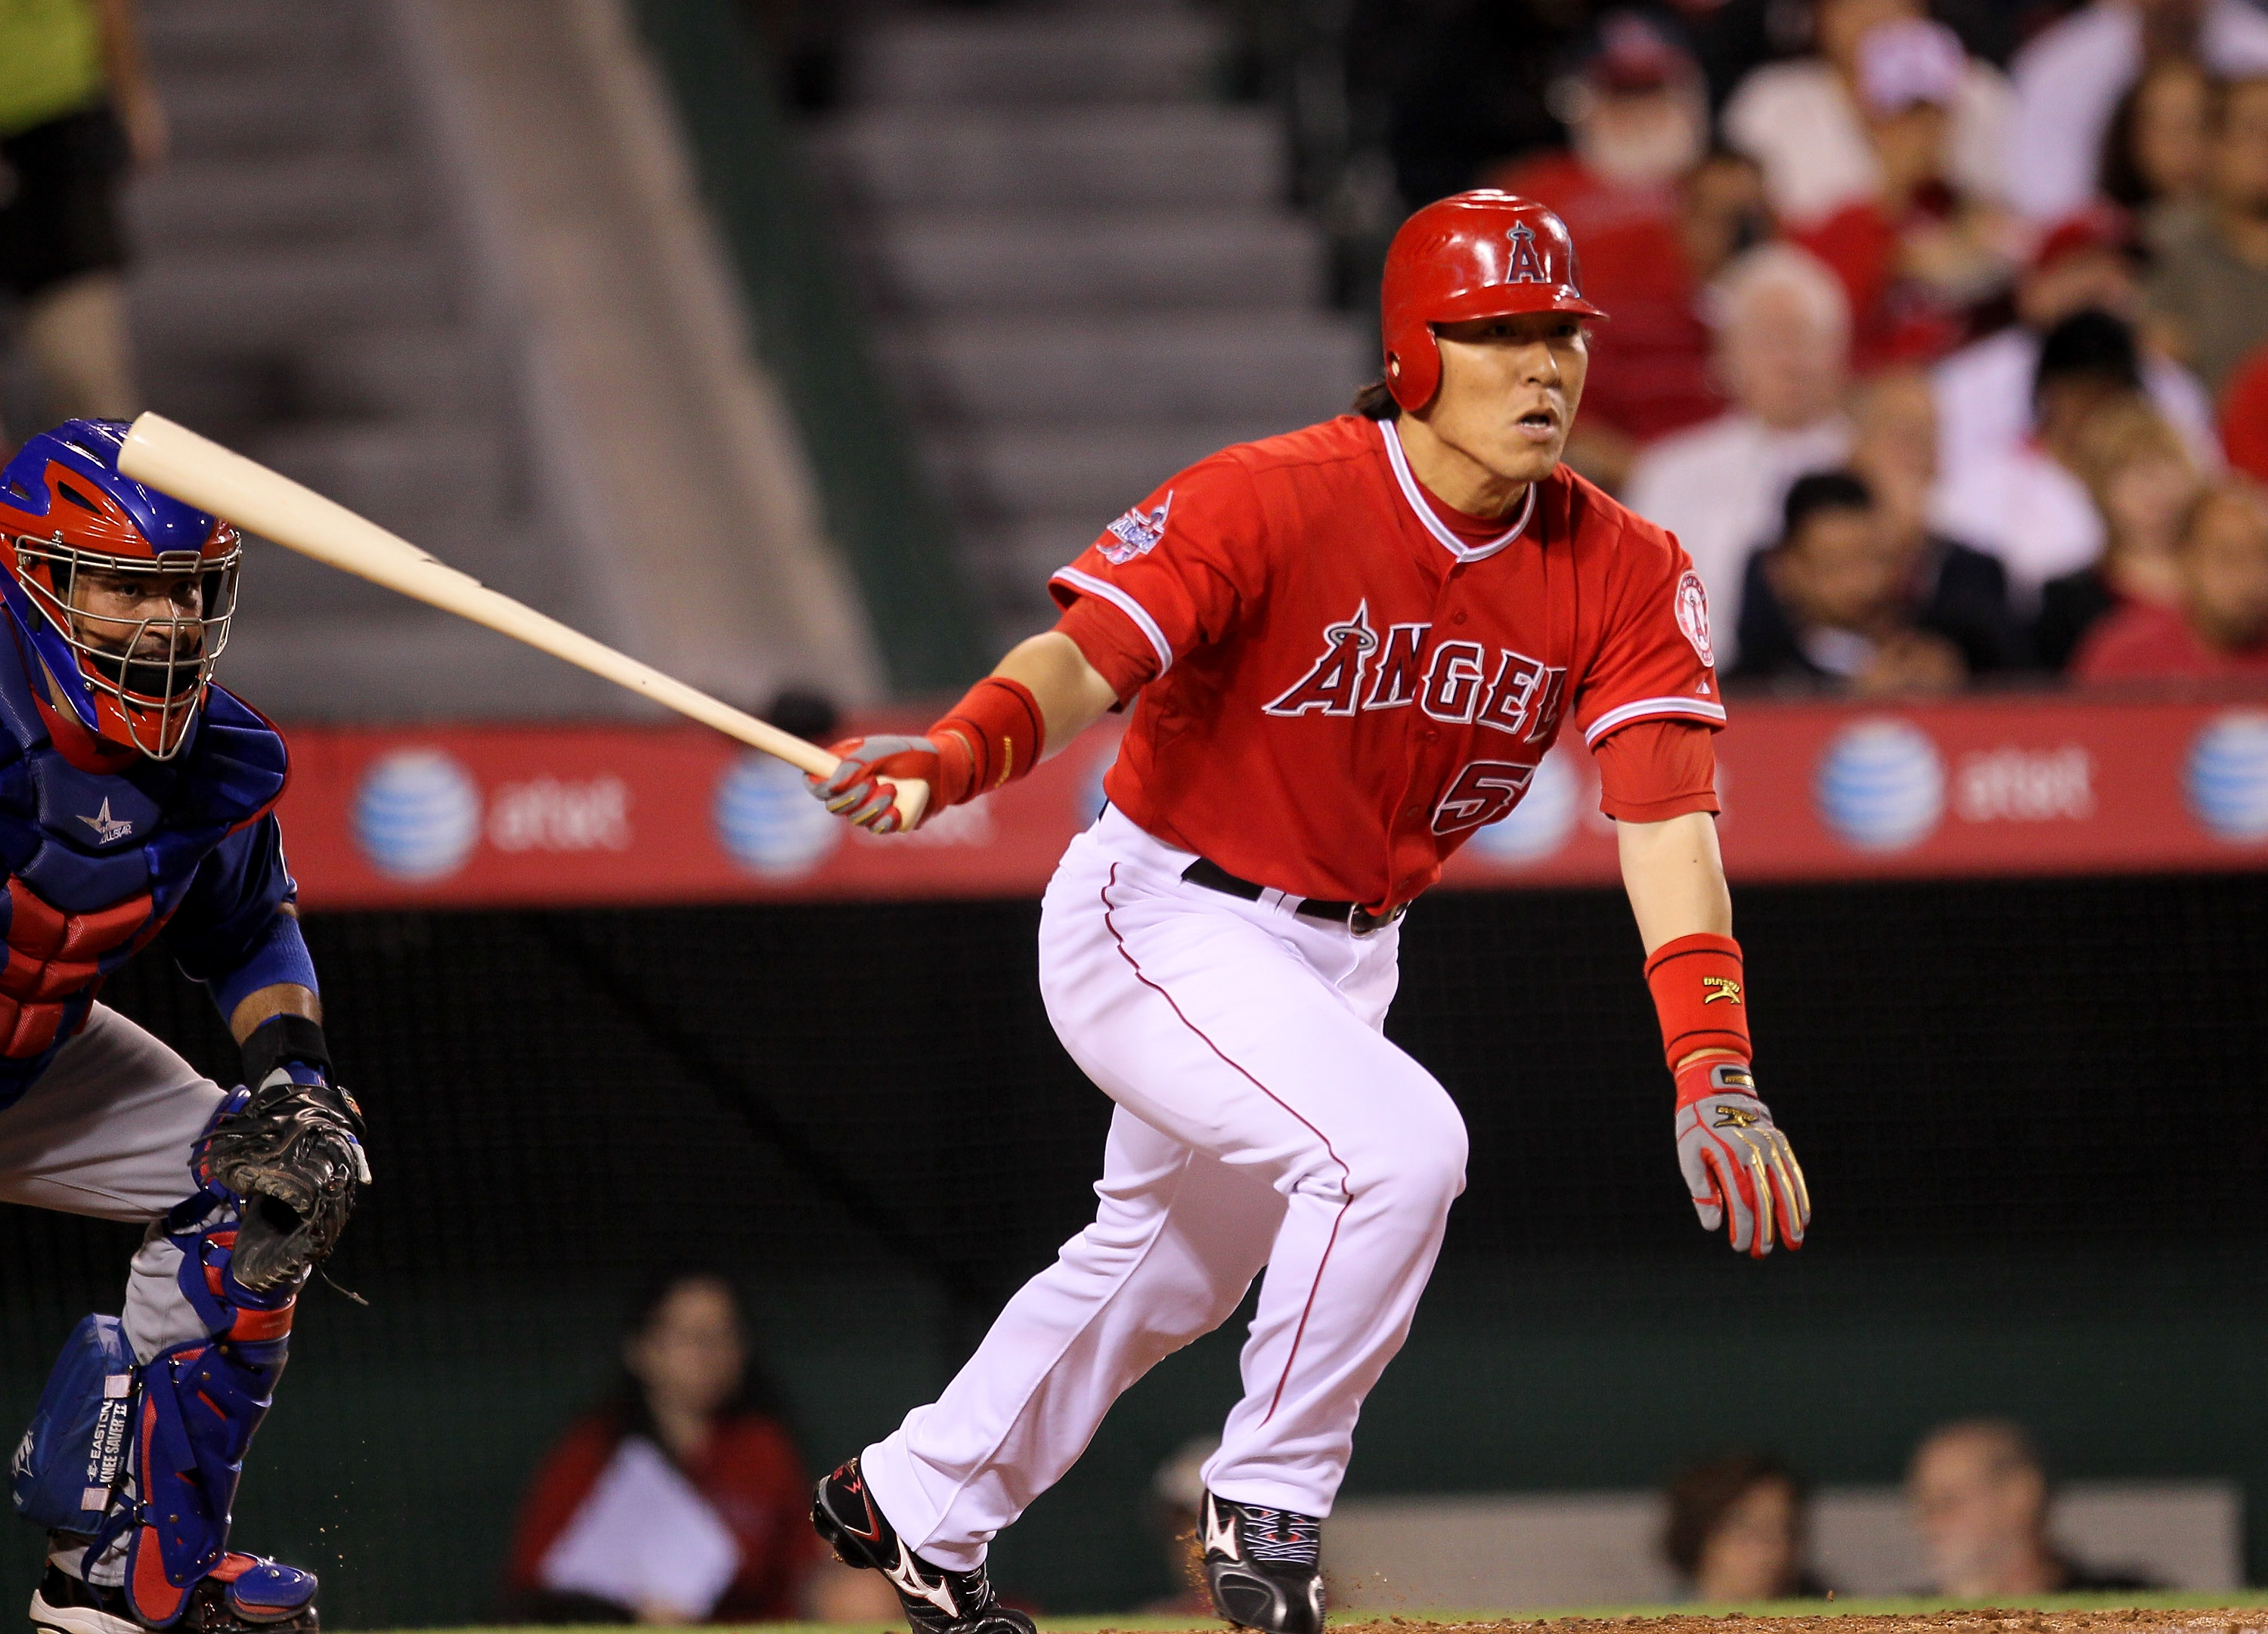 ANAHEIM, CA - SEPTEMBER 21:  Hideki Matsui #55 of the Los Angeles Angels of Anaheim hits a leadoff double in the fourth inning against the Texas Rangers on September 21, 2010 at Angel Stadium in Anaheim, California.  (Photo by Stephen Dunn/Getty Images)